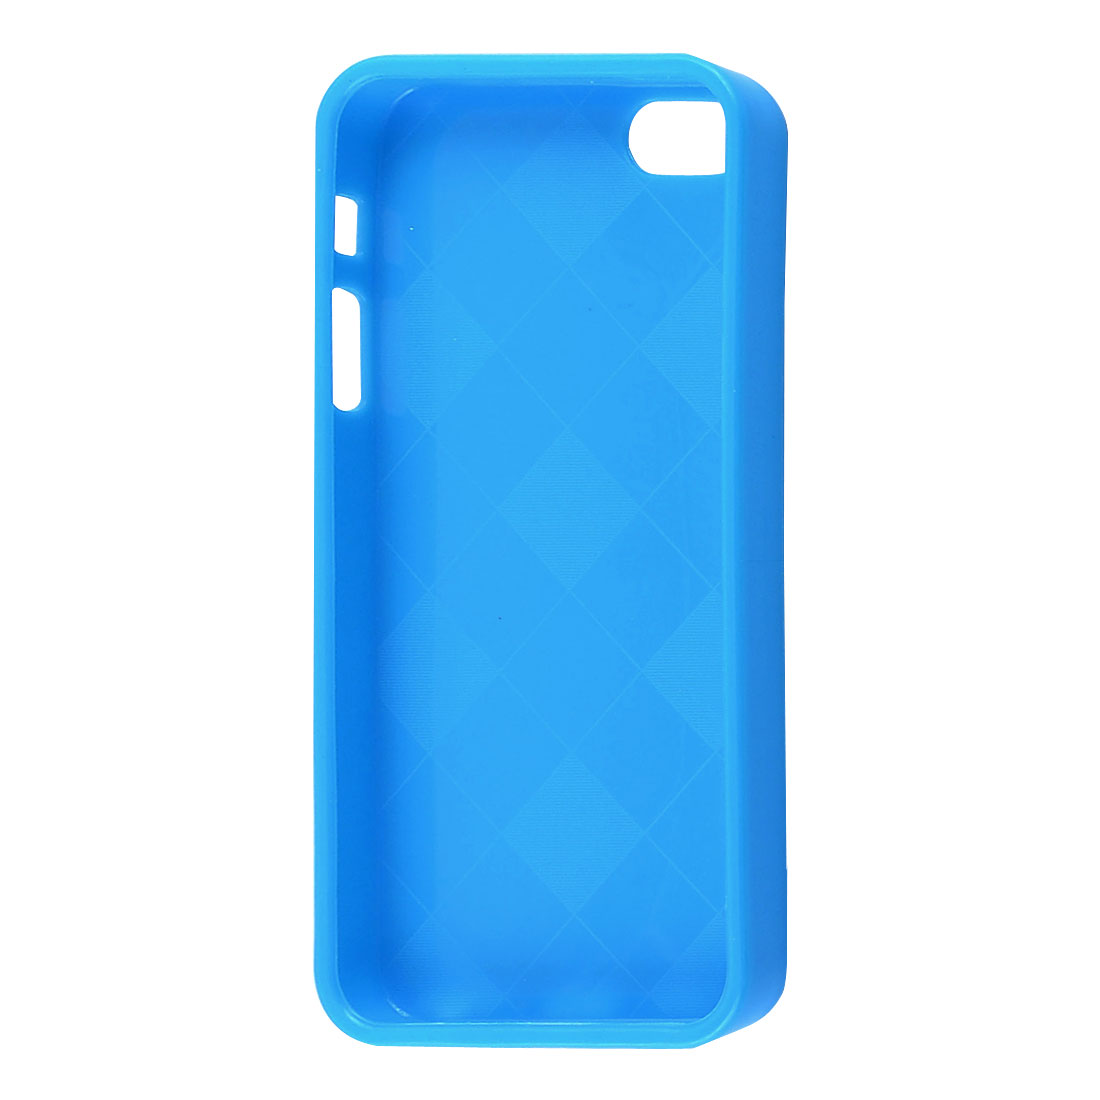 Blue Soft Protective Case Cover for Apple iPhone 5 5G